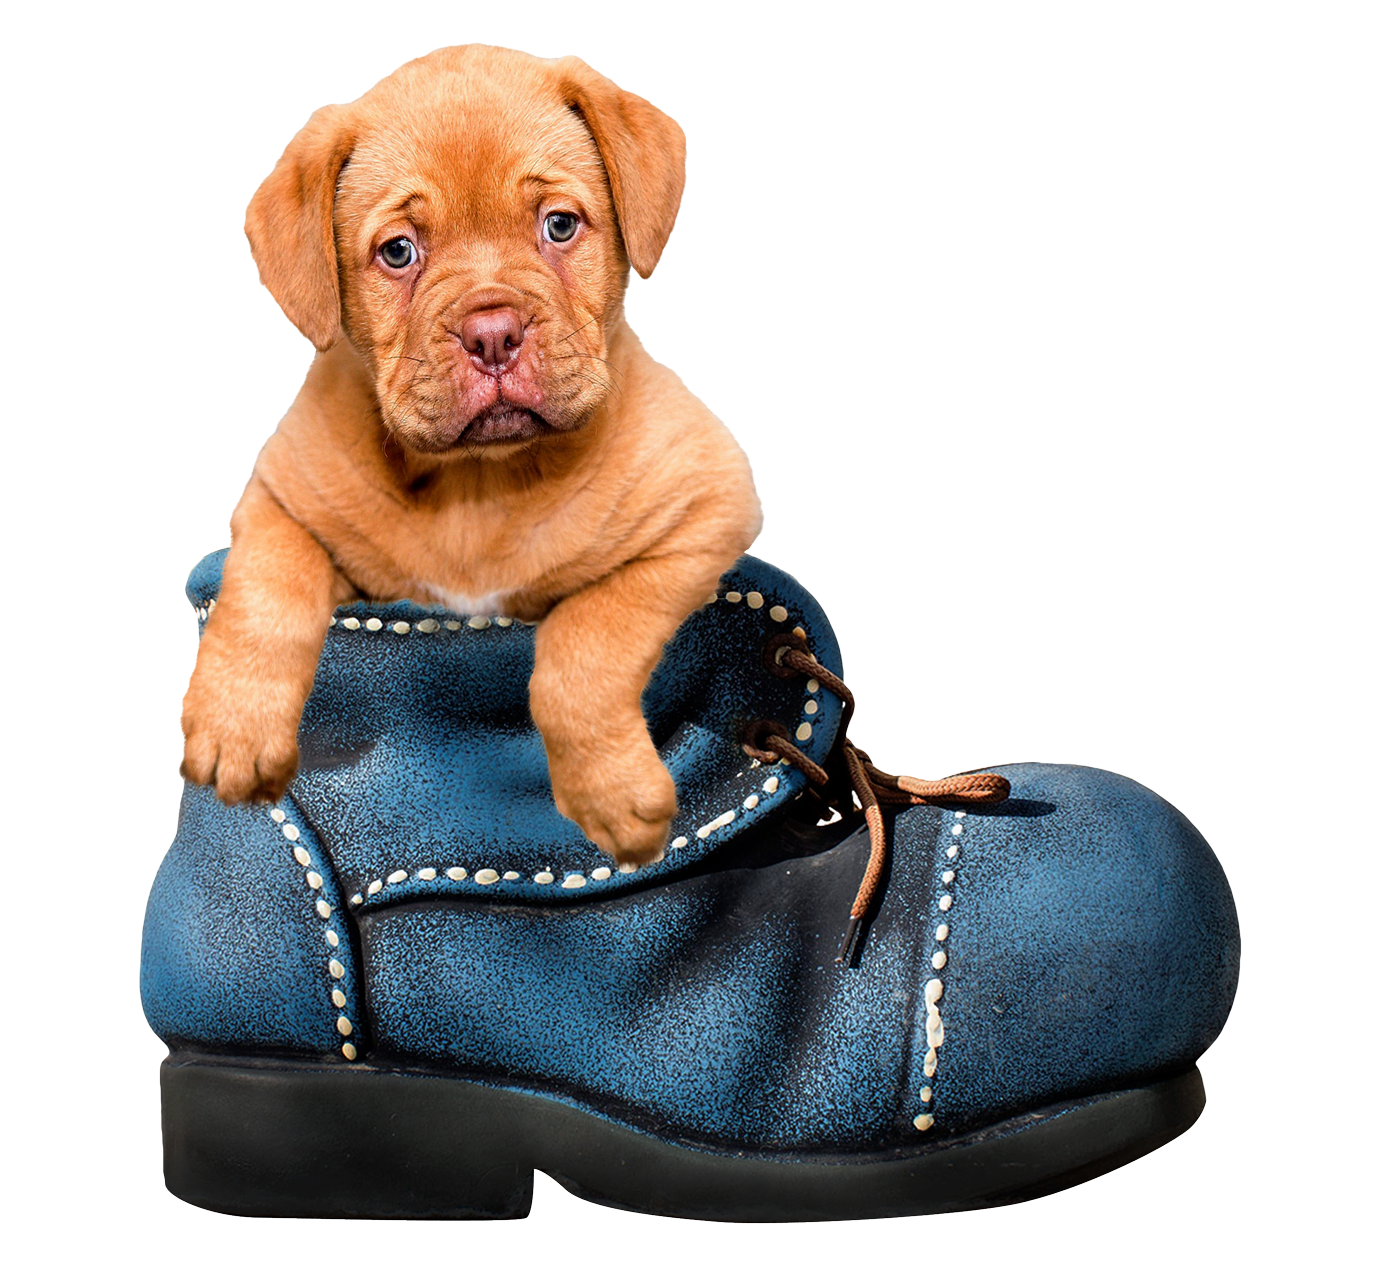 clip freeuse stock Puppy Dog PNG Image